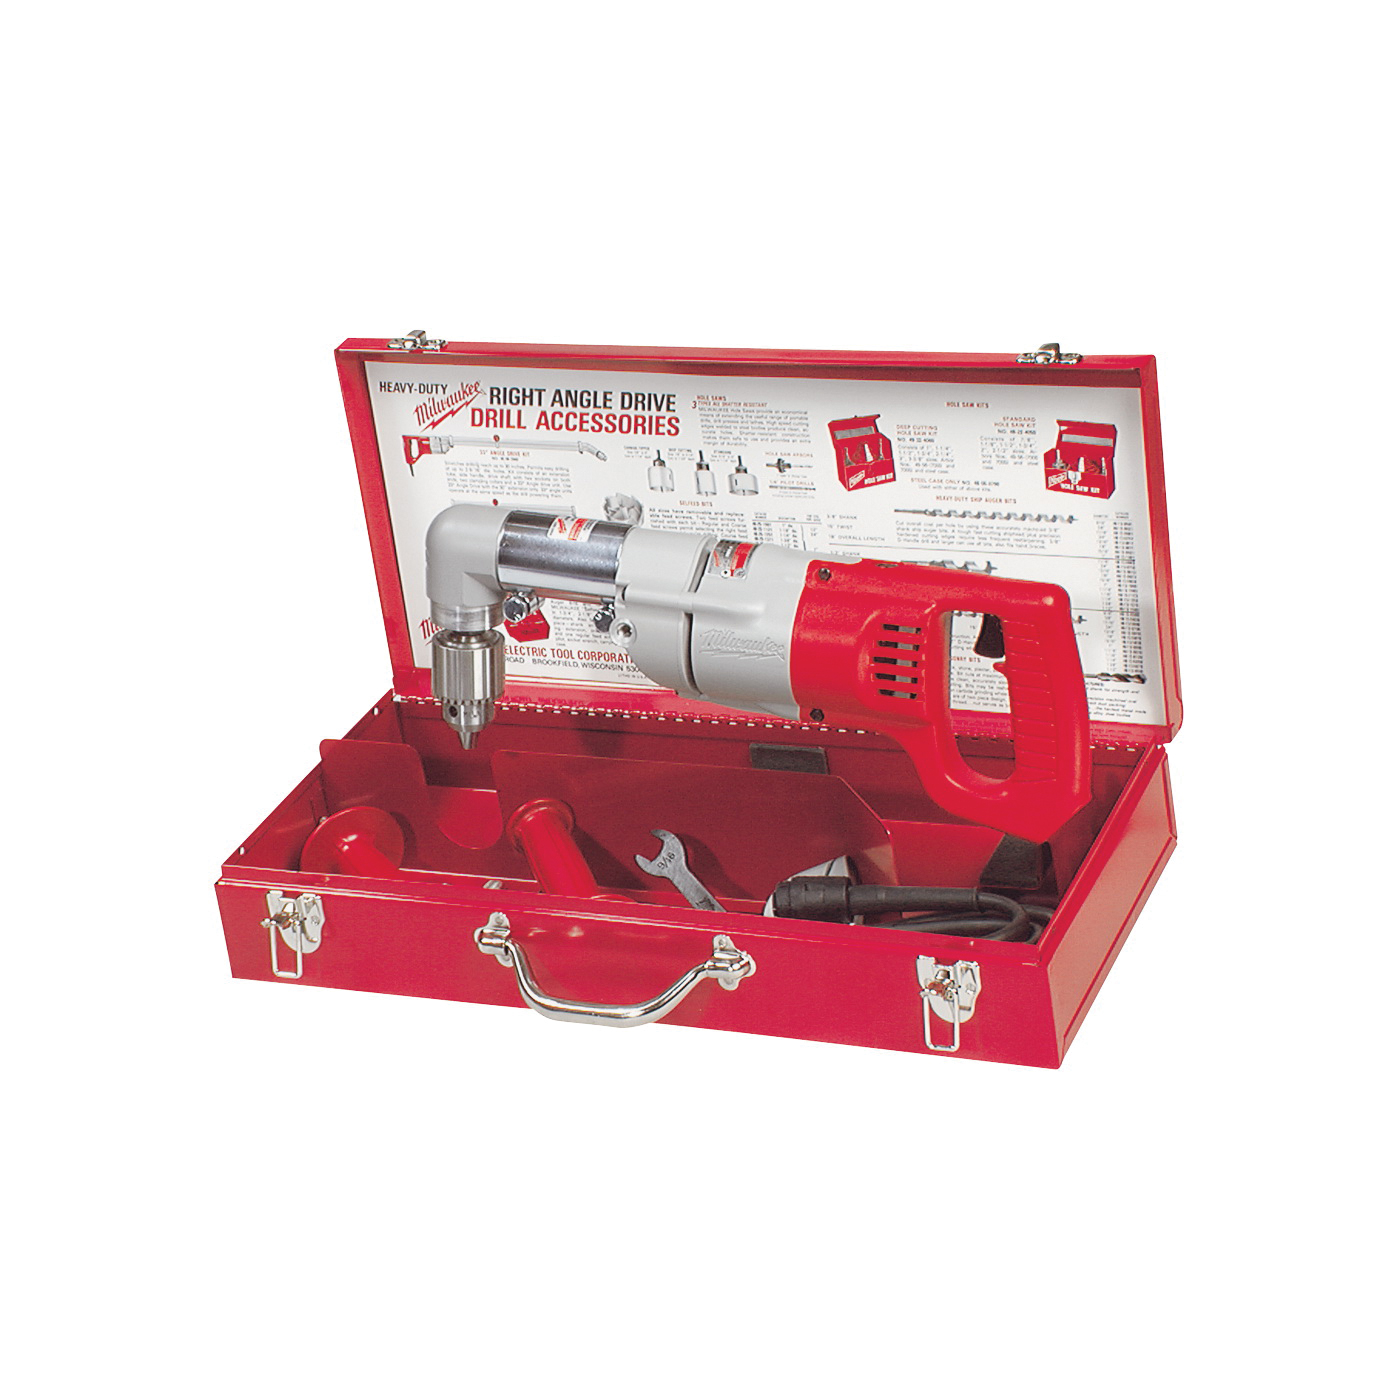 Picture of Milwaukee 3107-6 Drill Kit, 120 VAC, 1/2 in Steel Drilling, 1/2 in Chuck, Keyed Chuck, 0 to 500 rpm No Load